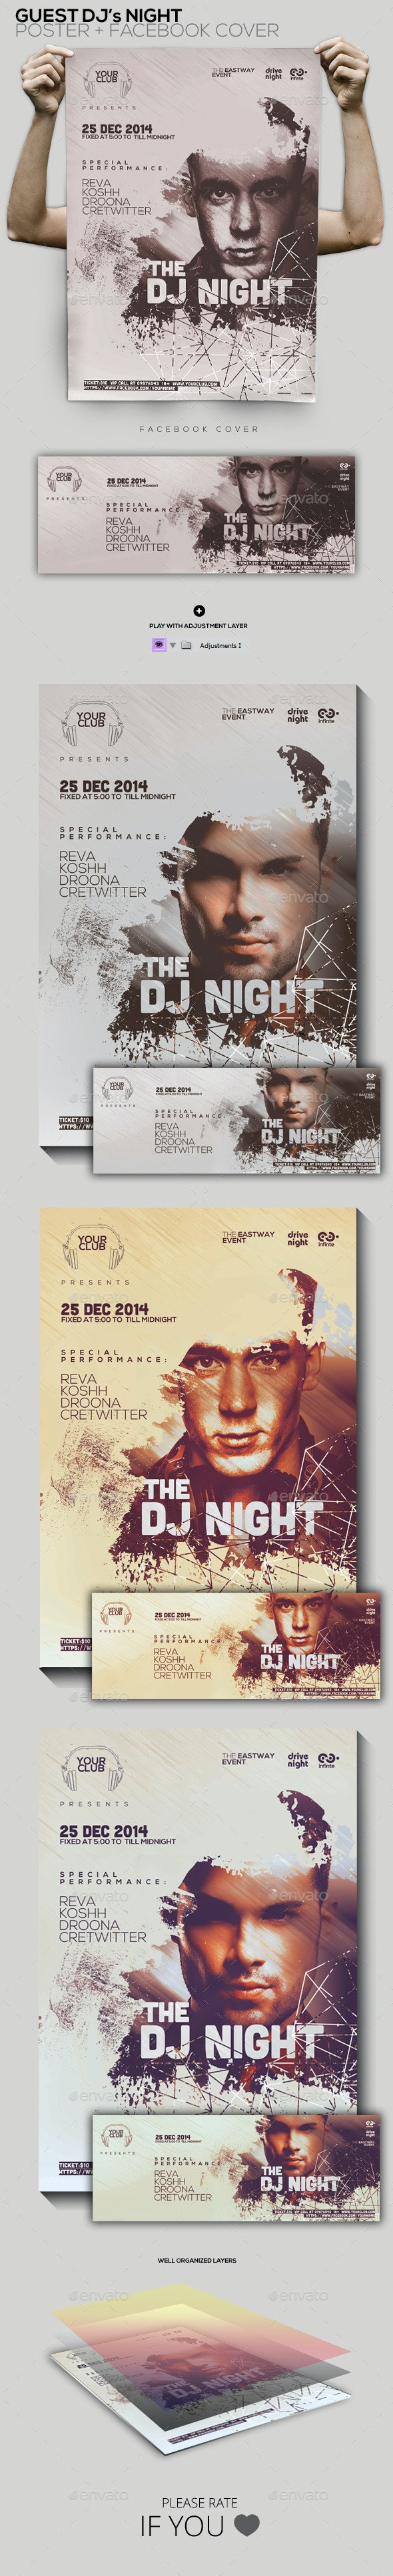 Guest Dj Party Poster/Flyer/Facebook Cover - Clubs & Parties Events